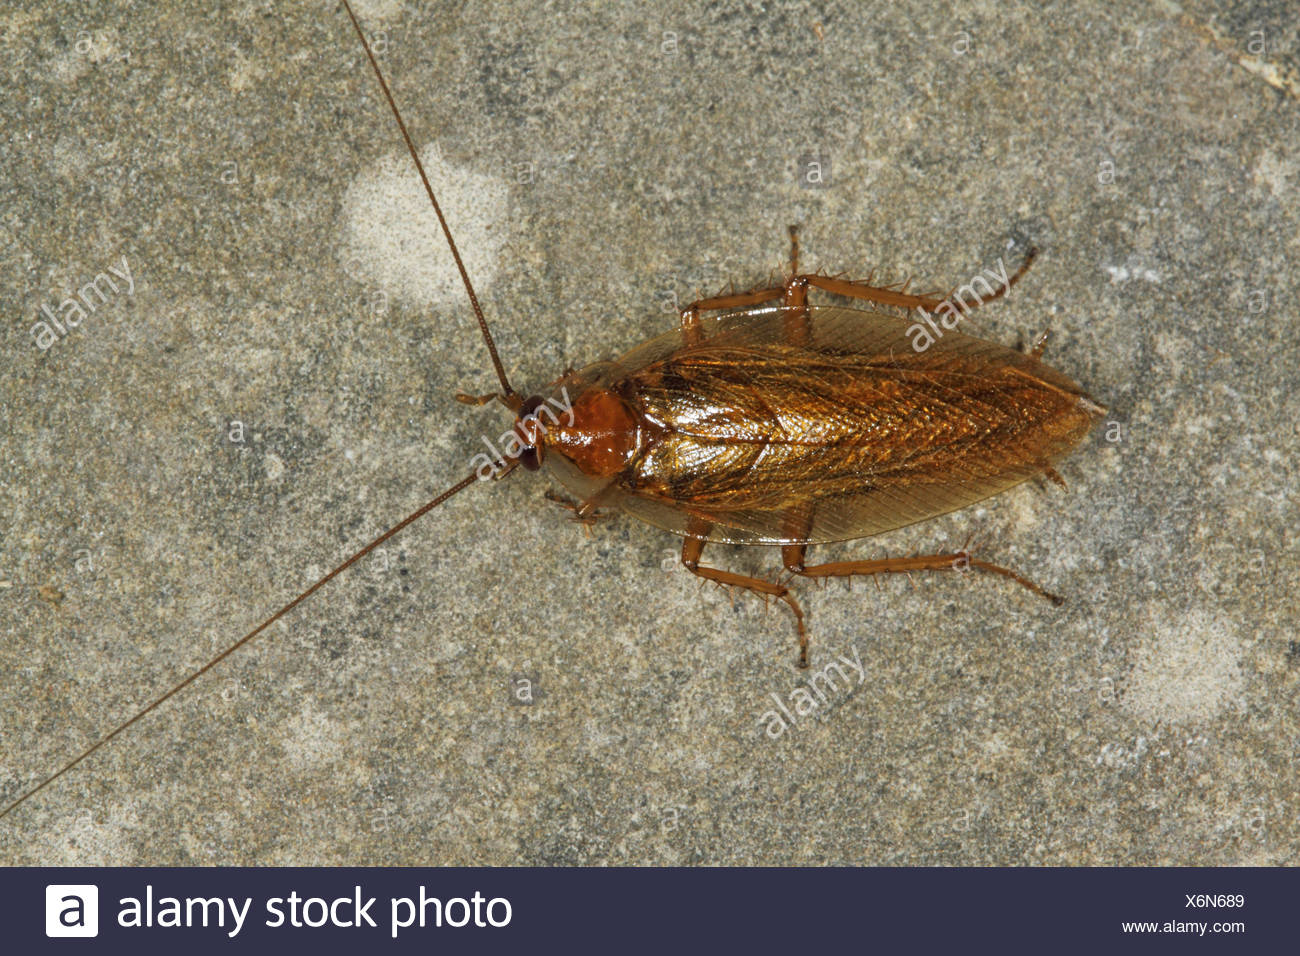 Ectobid cockroach, Field-dwelling cockroach (Ectobius vittiventris), on a stone, Germany - Stock Image